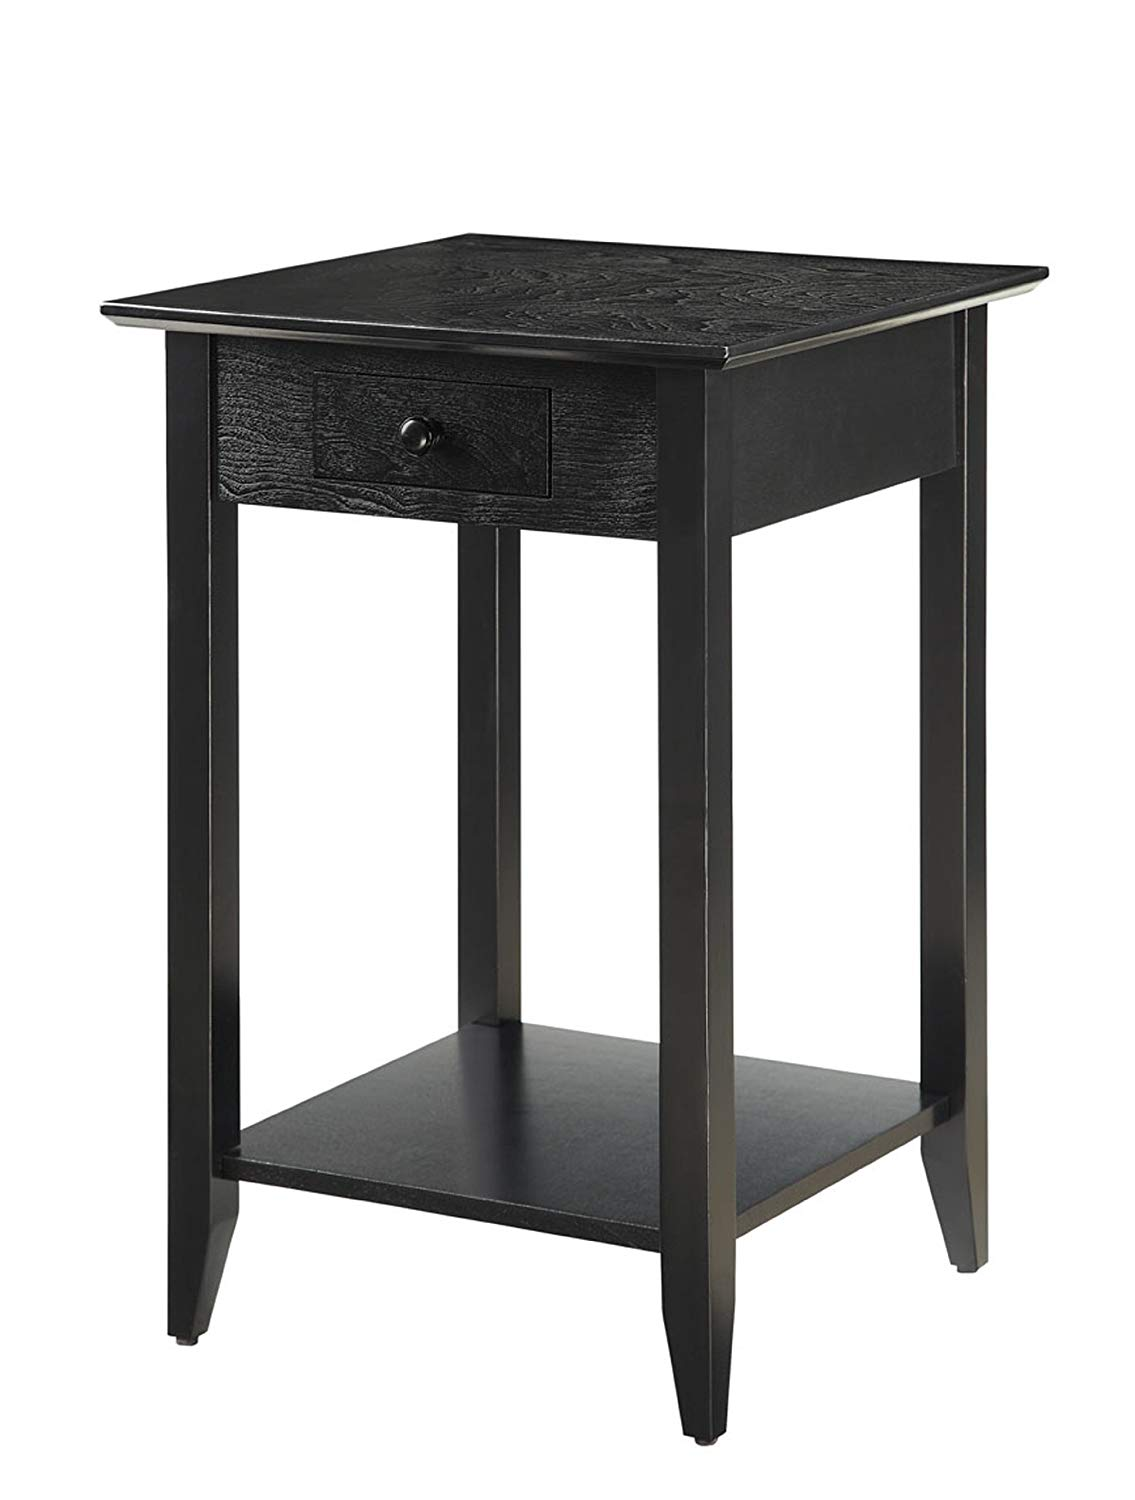 convenience concepts american heritage end table with small pine accent shelf and drawer black kitchen dining target bench seat square blanket box ikea keter beer cooler